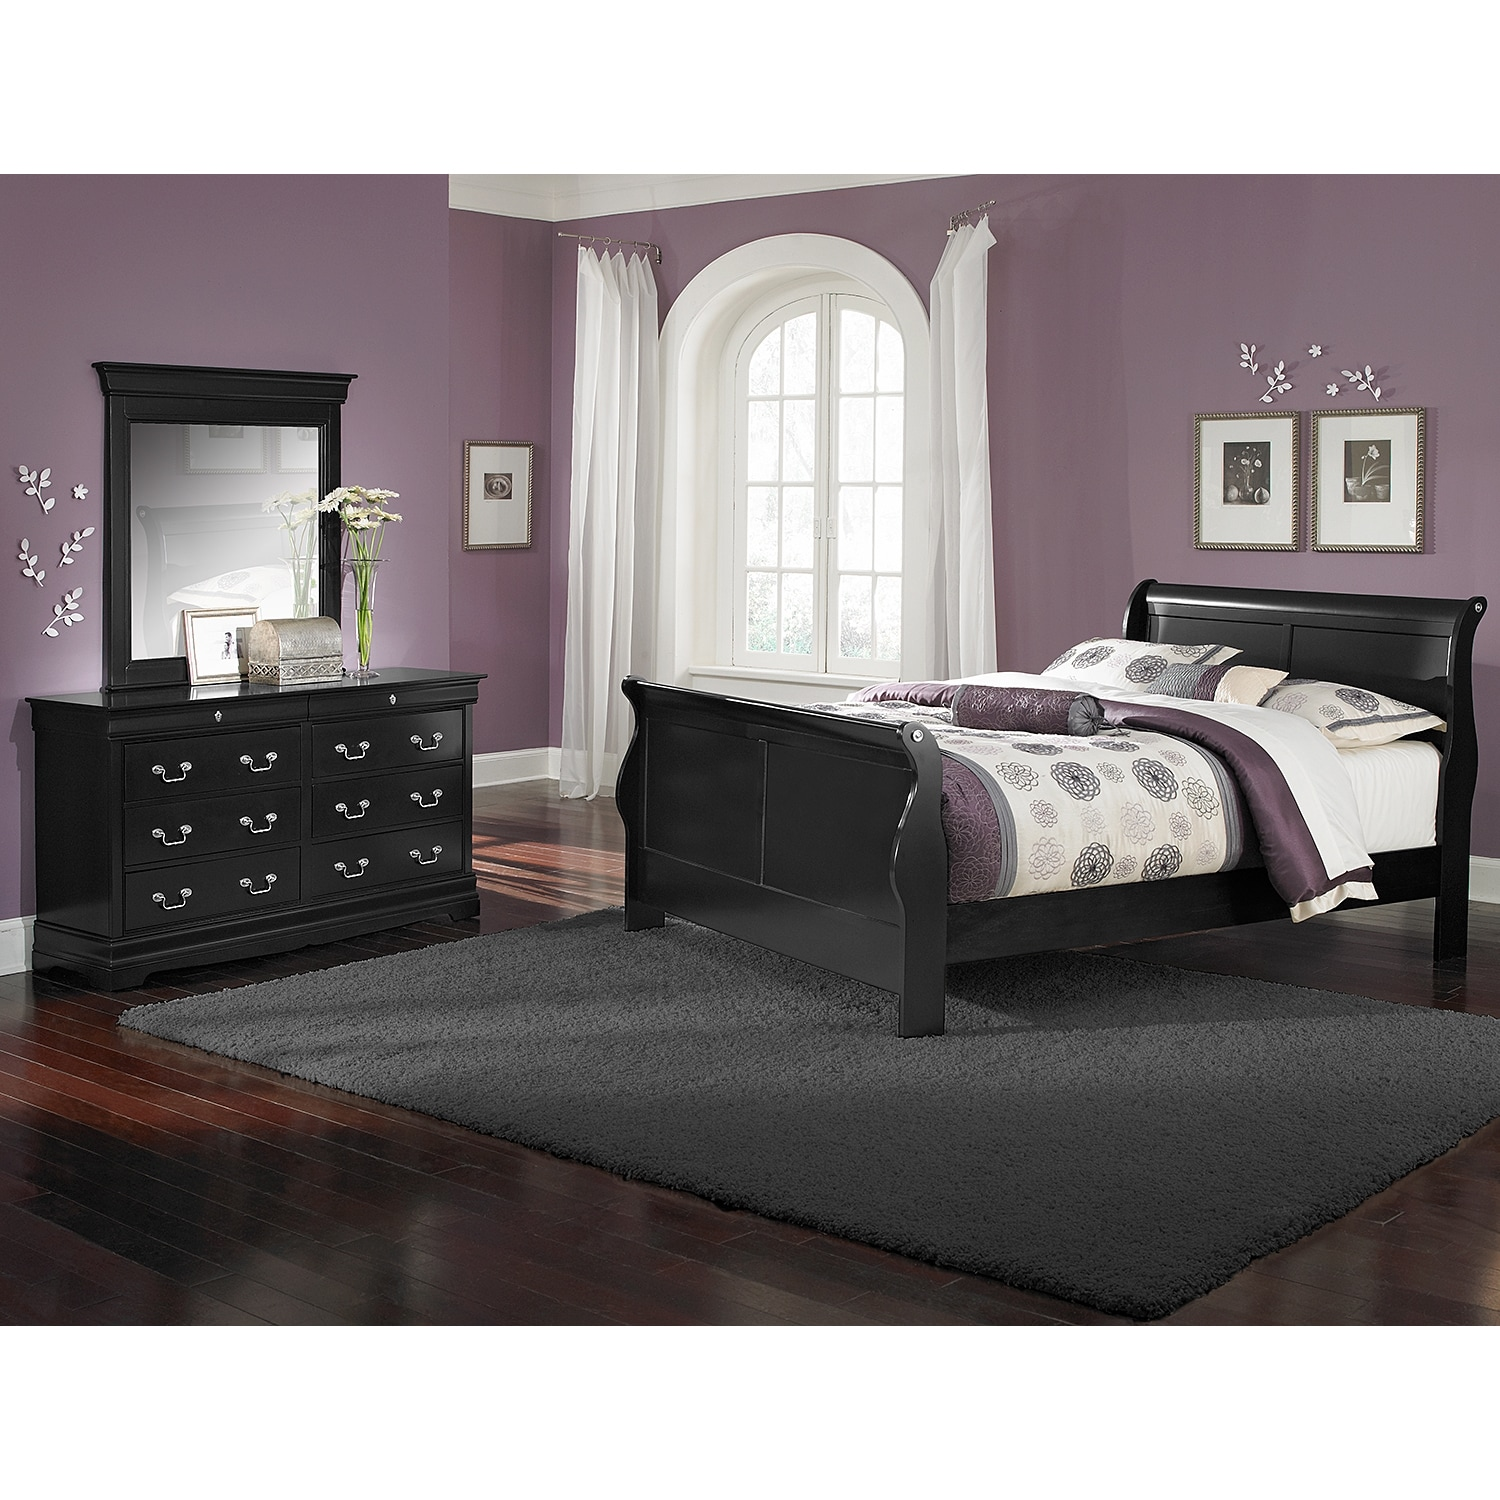 neo classic youth 5 piece twin bedroom set black american signature furniture. Black Bedroom Furniture Sets. Home Design Ideas